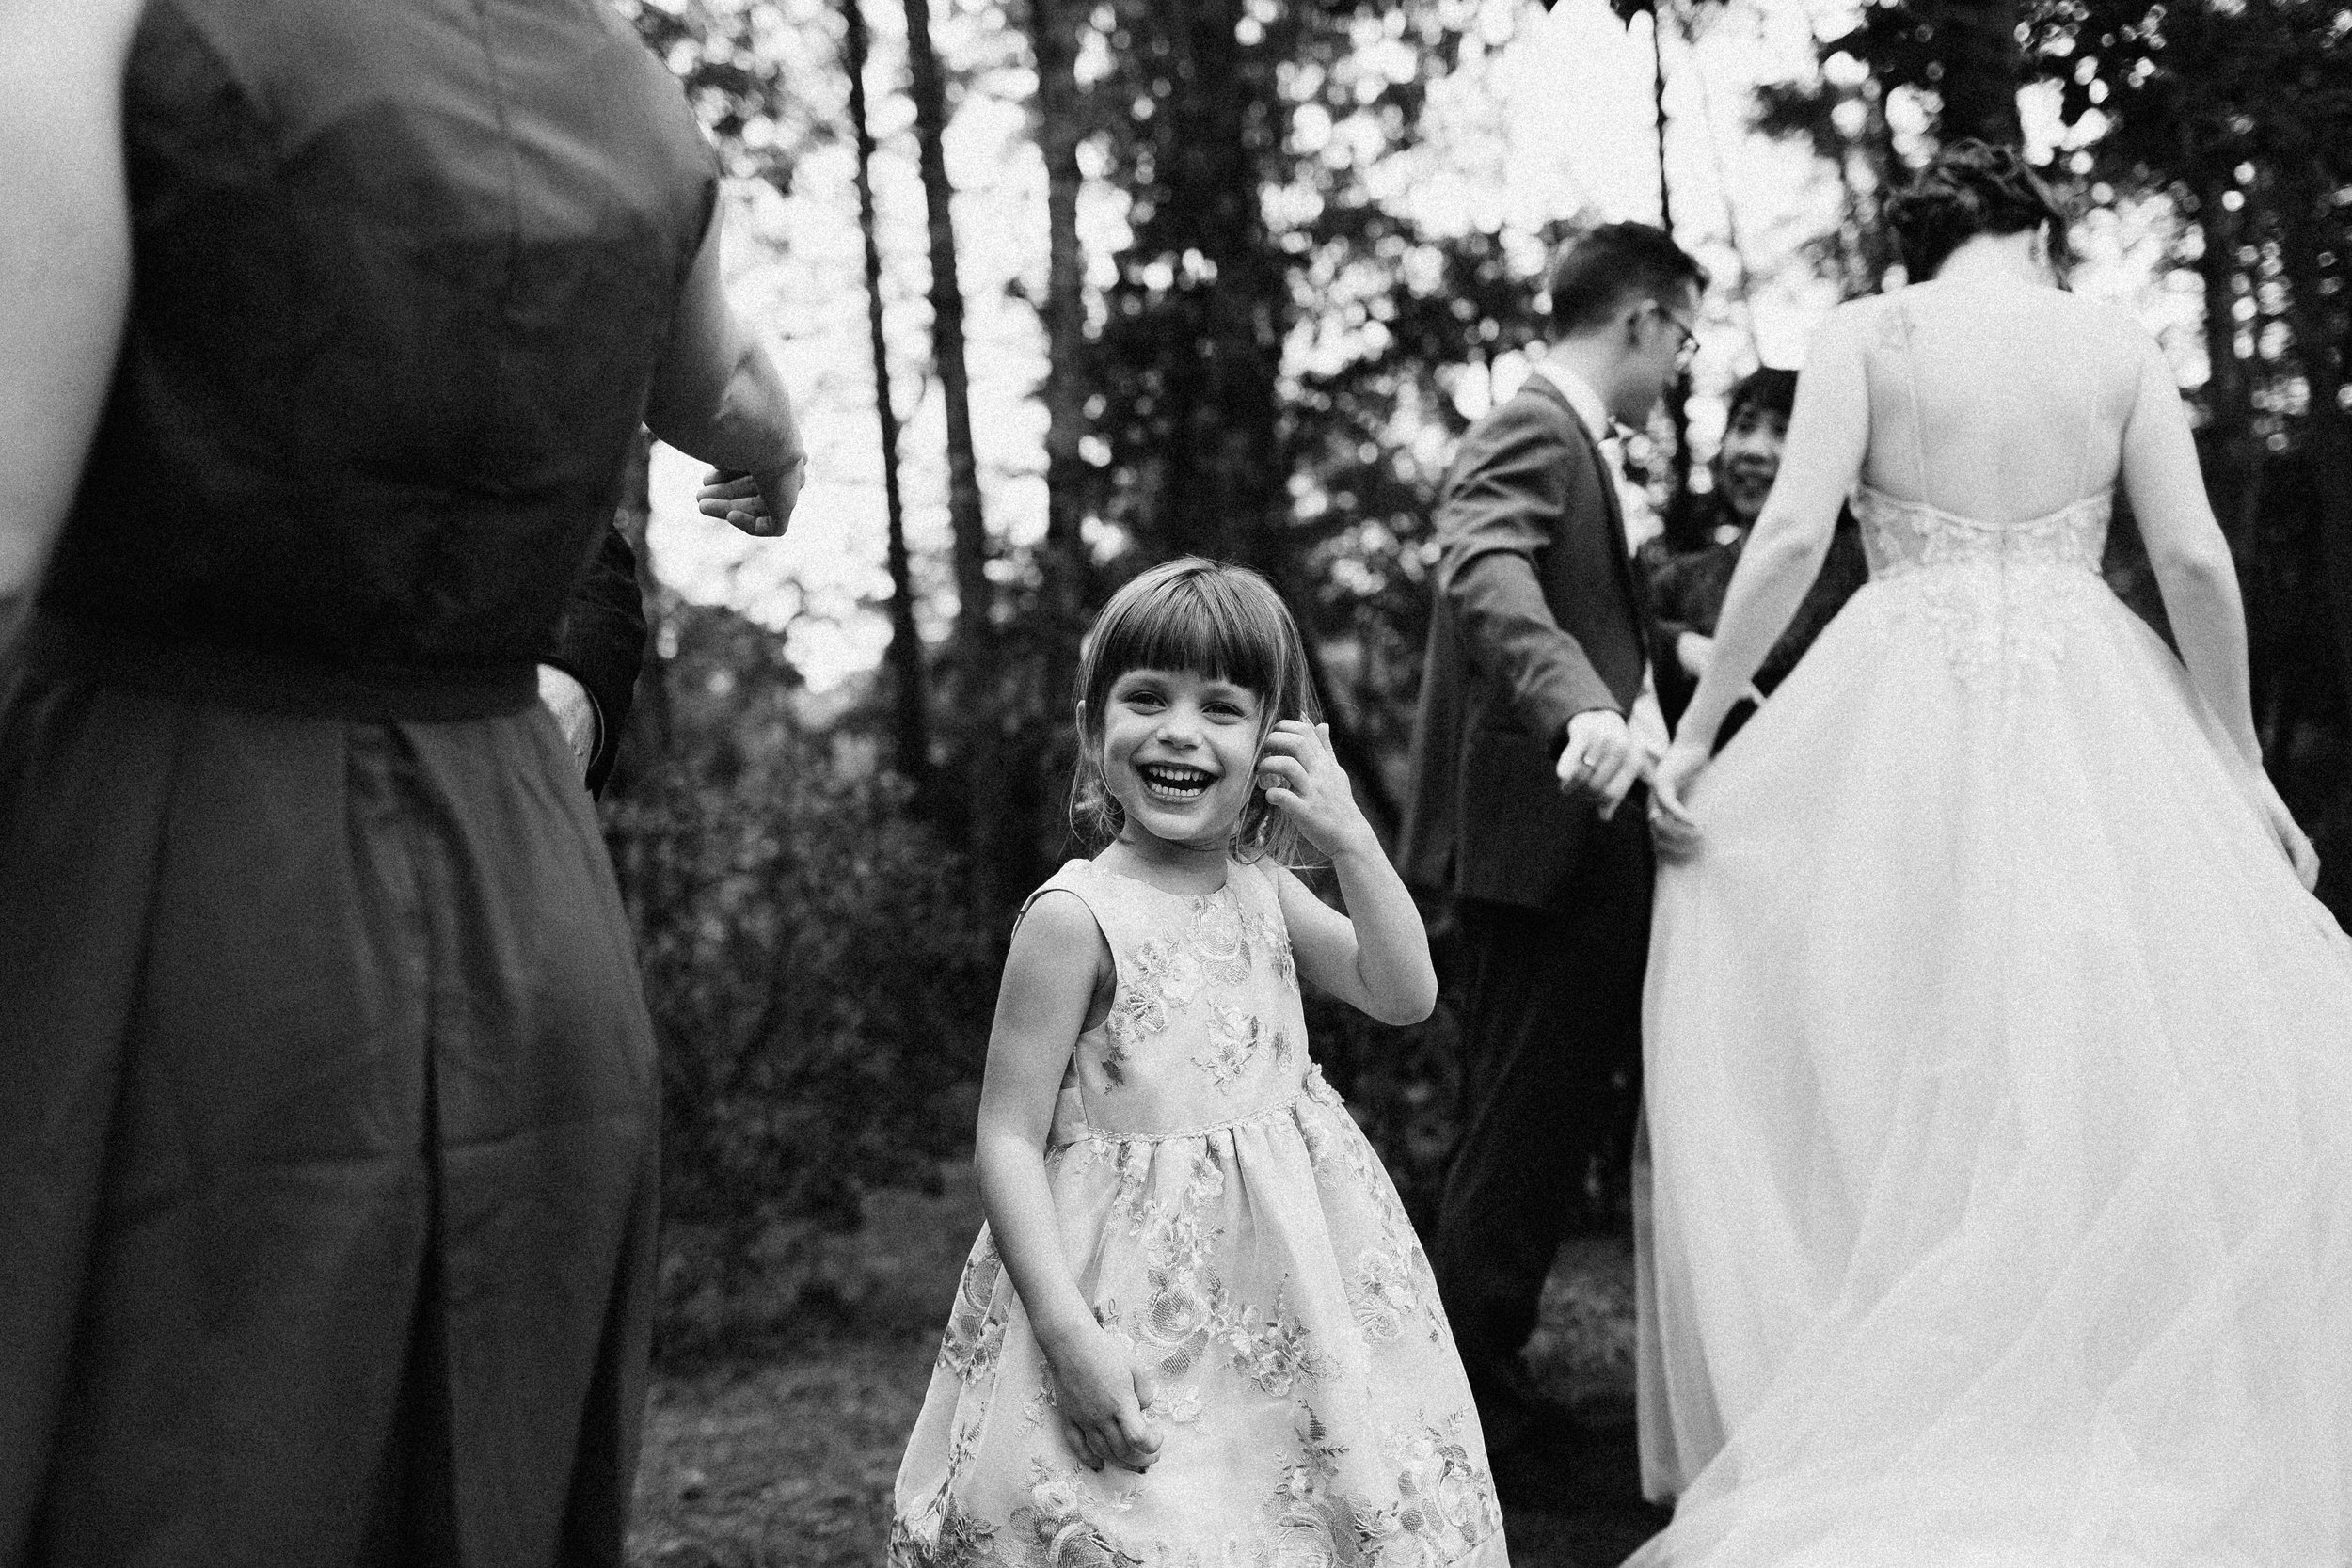 dahlonega_juliette_chapel_photojournalism_atlanta_wedding_photographers_1541.jpg